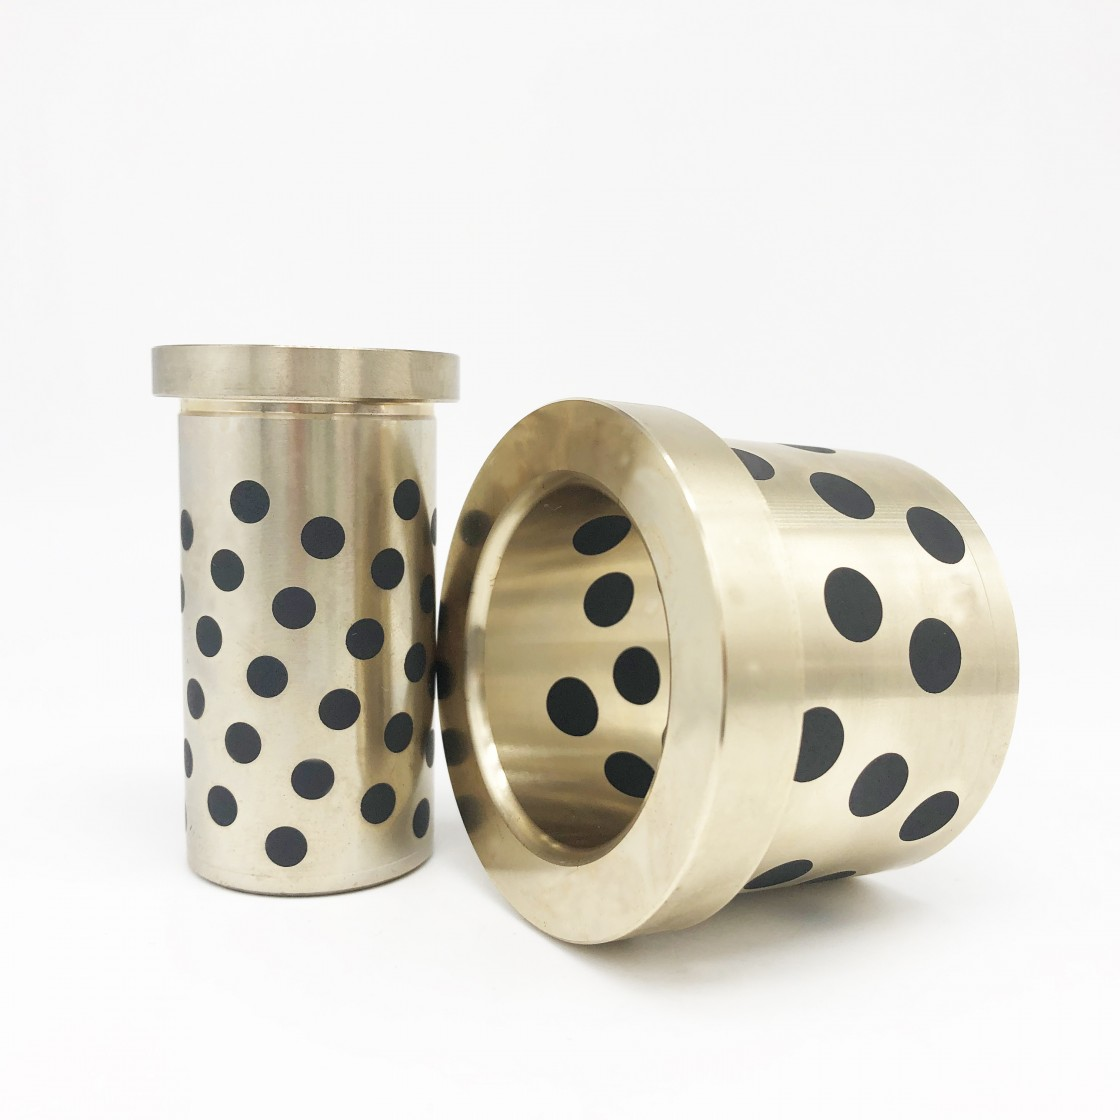 Bunting Bearings, LLC CB687656 Plain Sleeve & Flanged Bearings